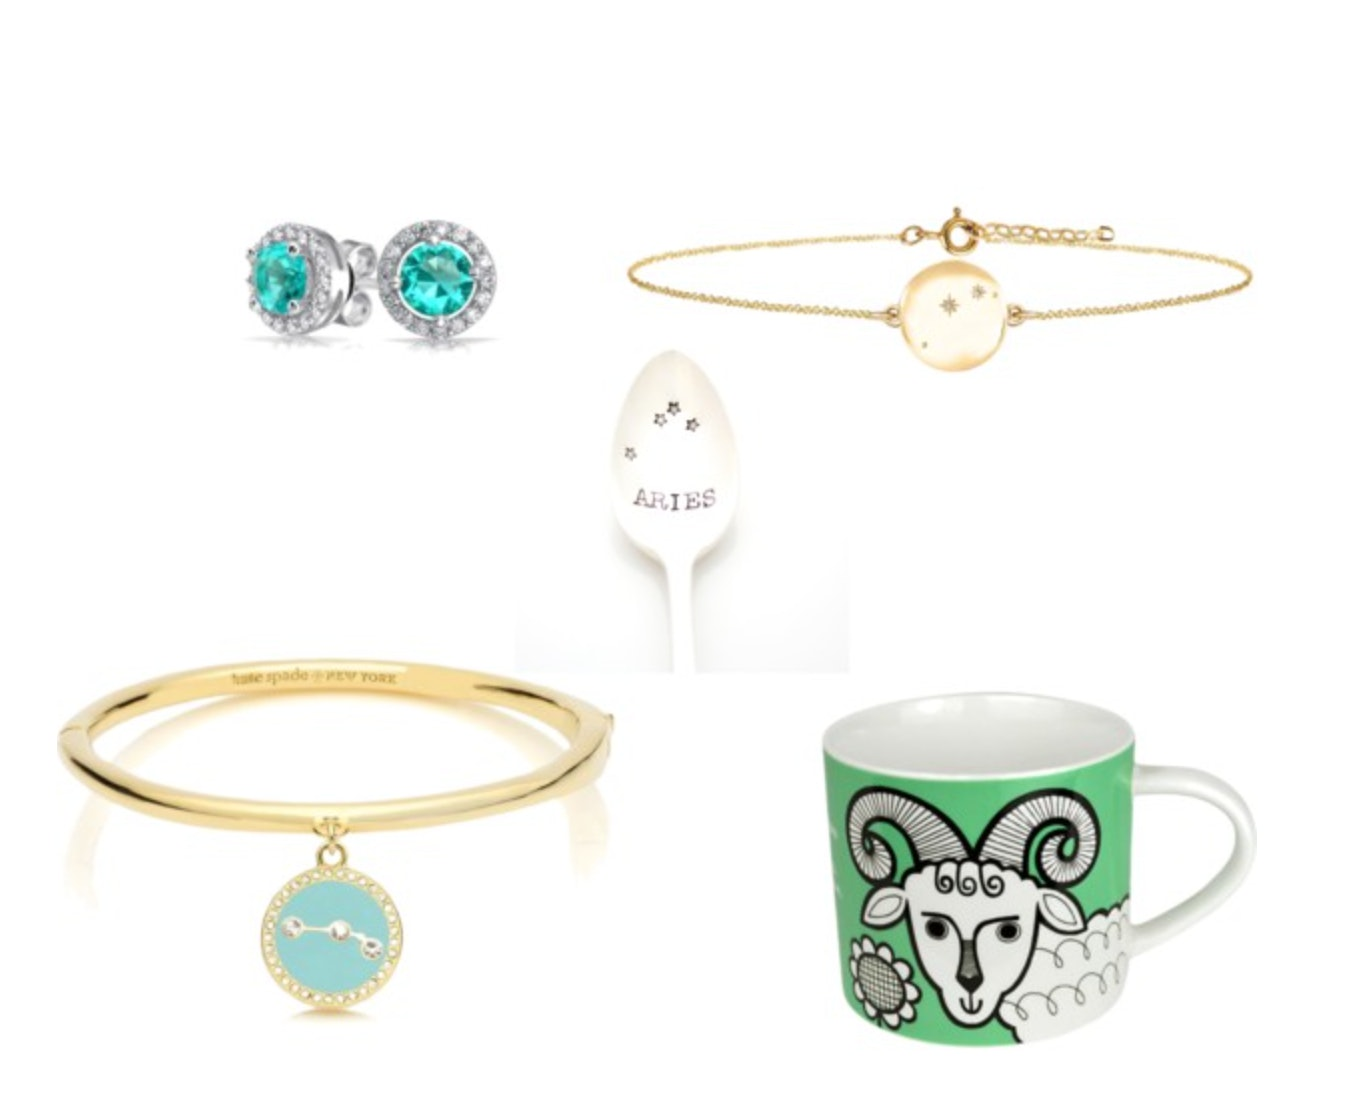 746df3b4253b07 What You Should Ask For This Christmas, Based On Your Zodiac Sign